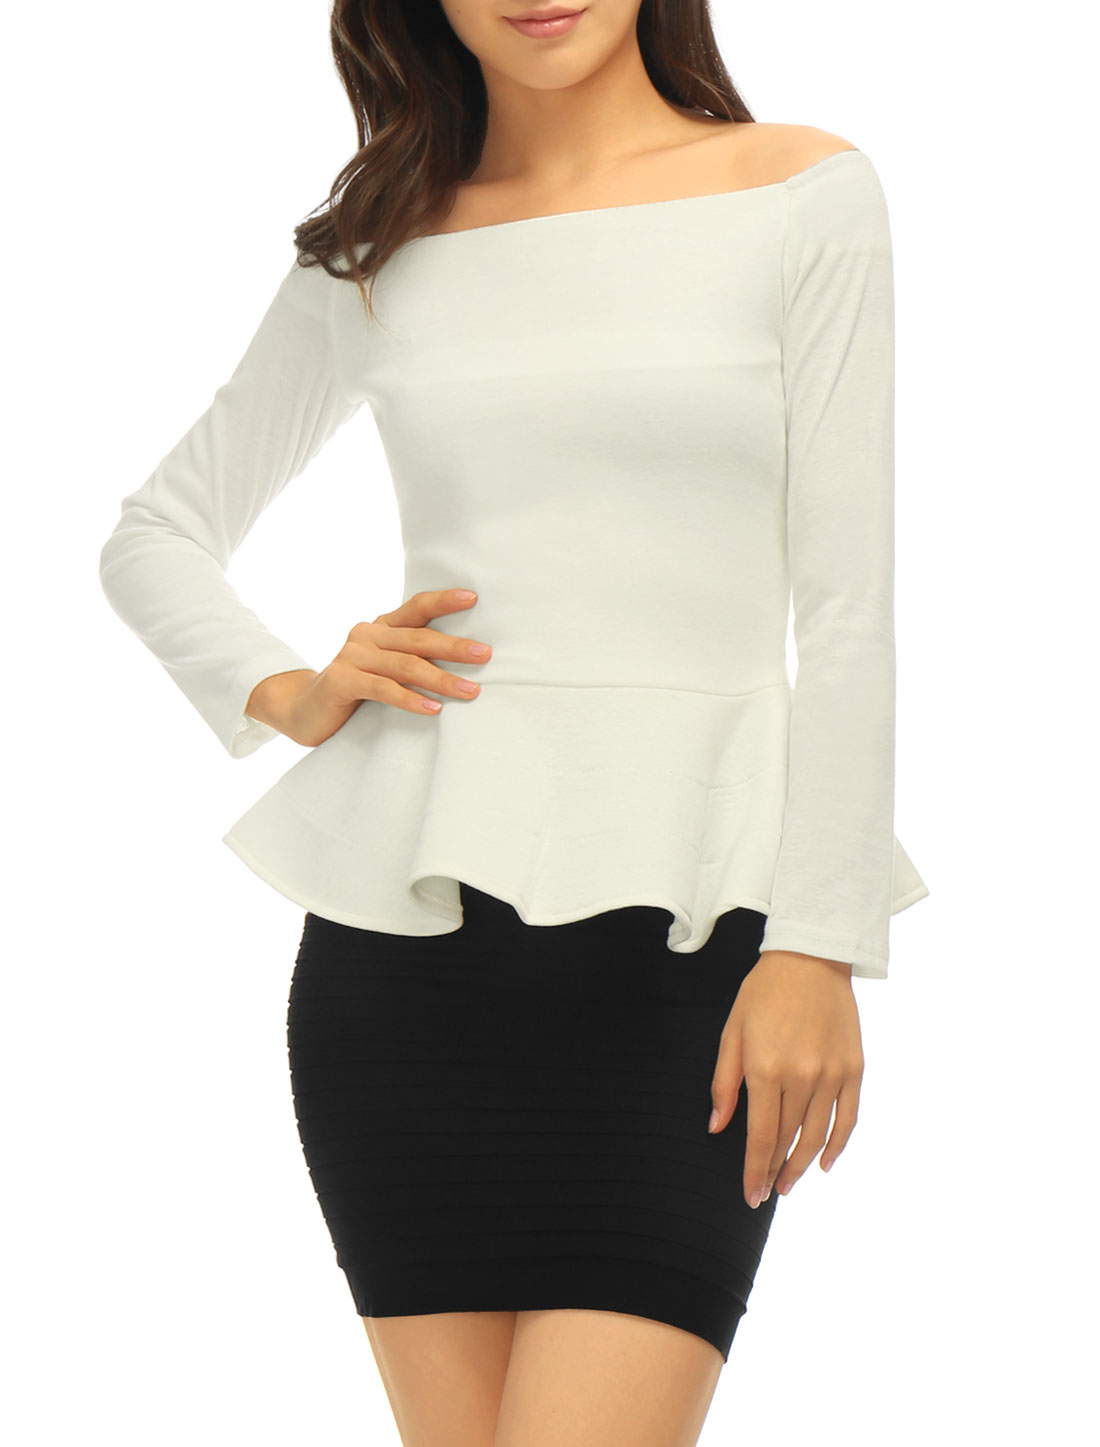 Women Off Shoulder Long Sleeves Slim Fit Peplum Top White L